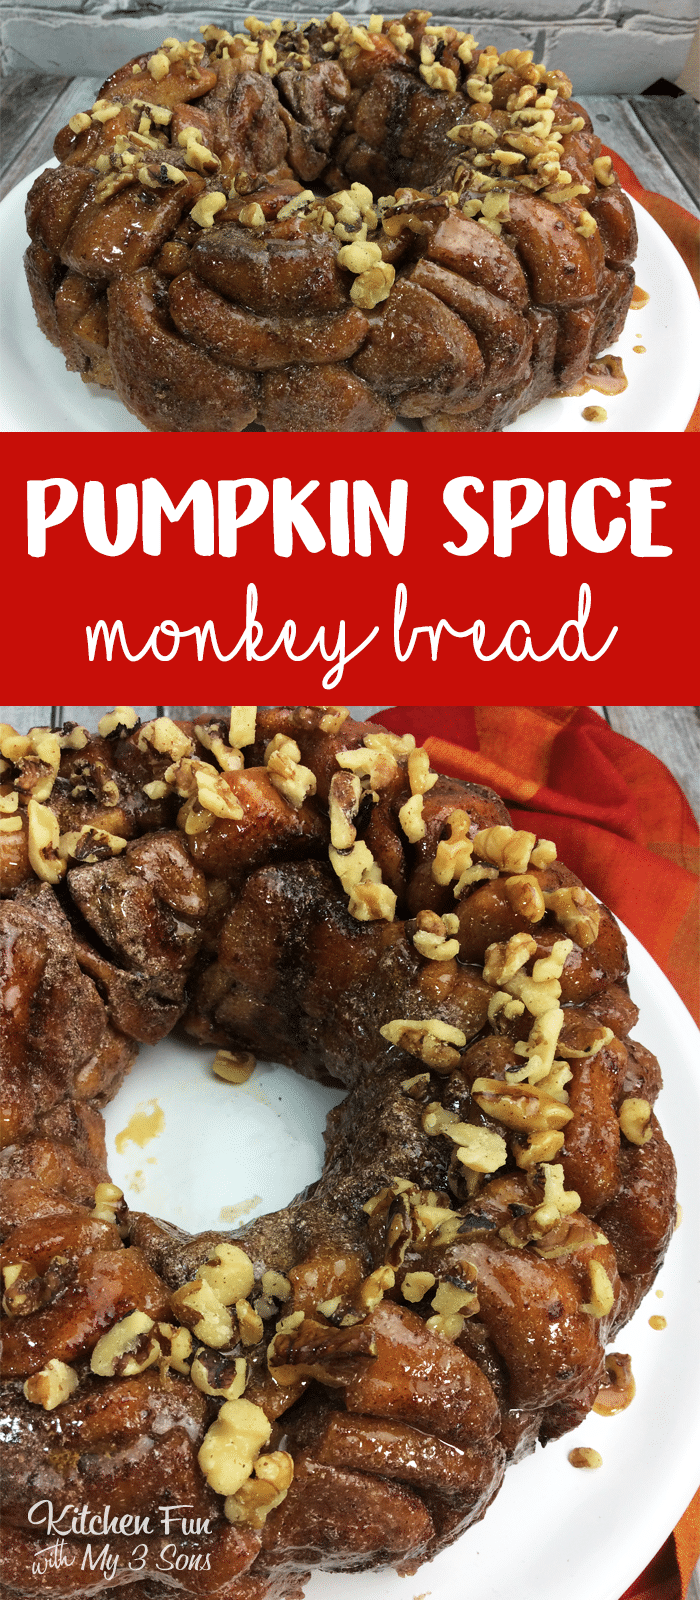 This Pumpkin Spice Monkey Bread with a cream cheese frosting and caramel sauce will warm your belly this winter. Such a delicious fall recipe.